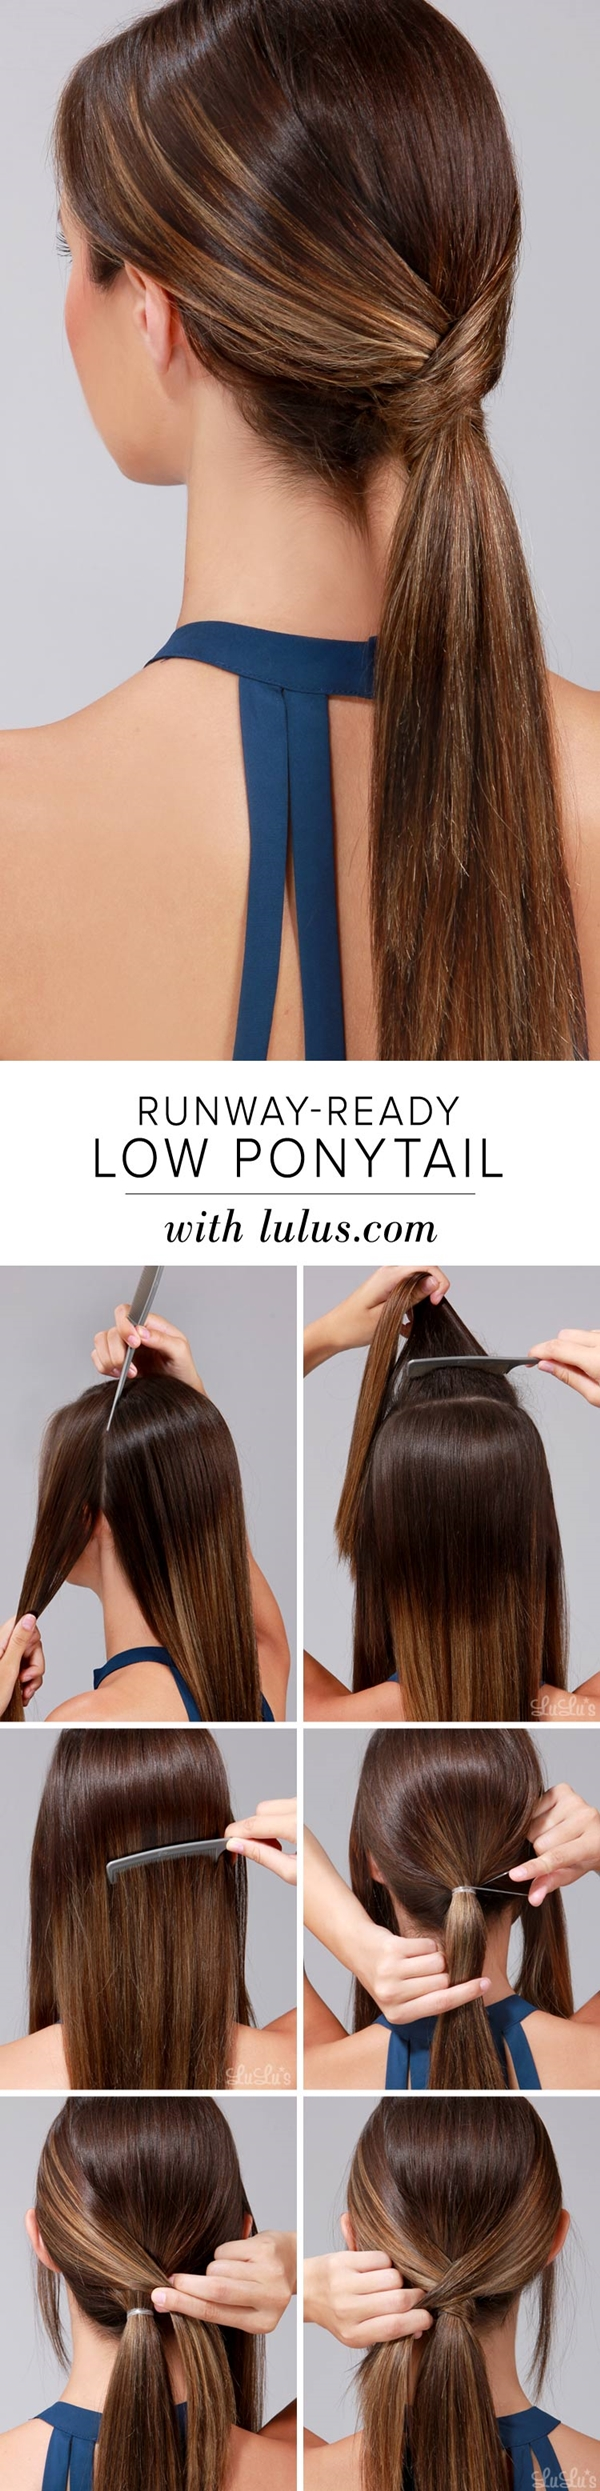 12 Quick and Easy Back to School Hairstyle for Long Hair